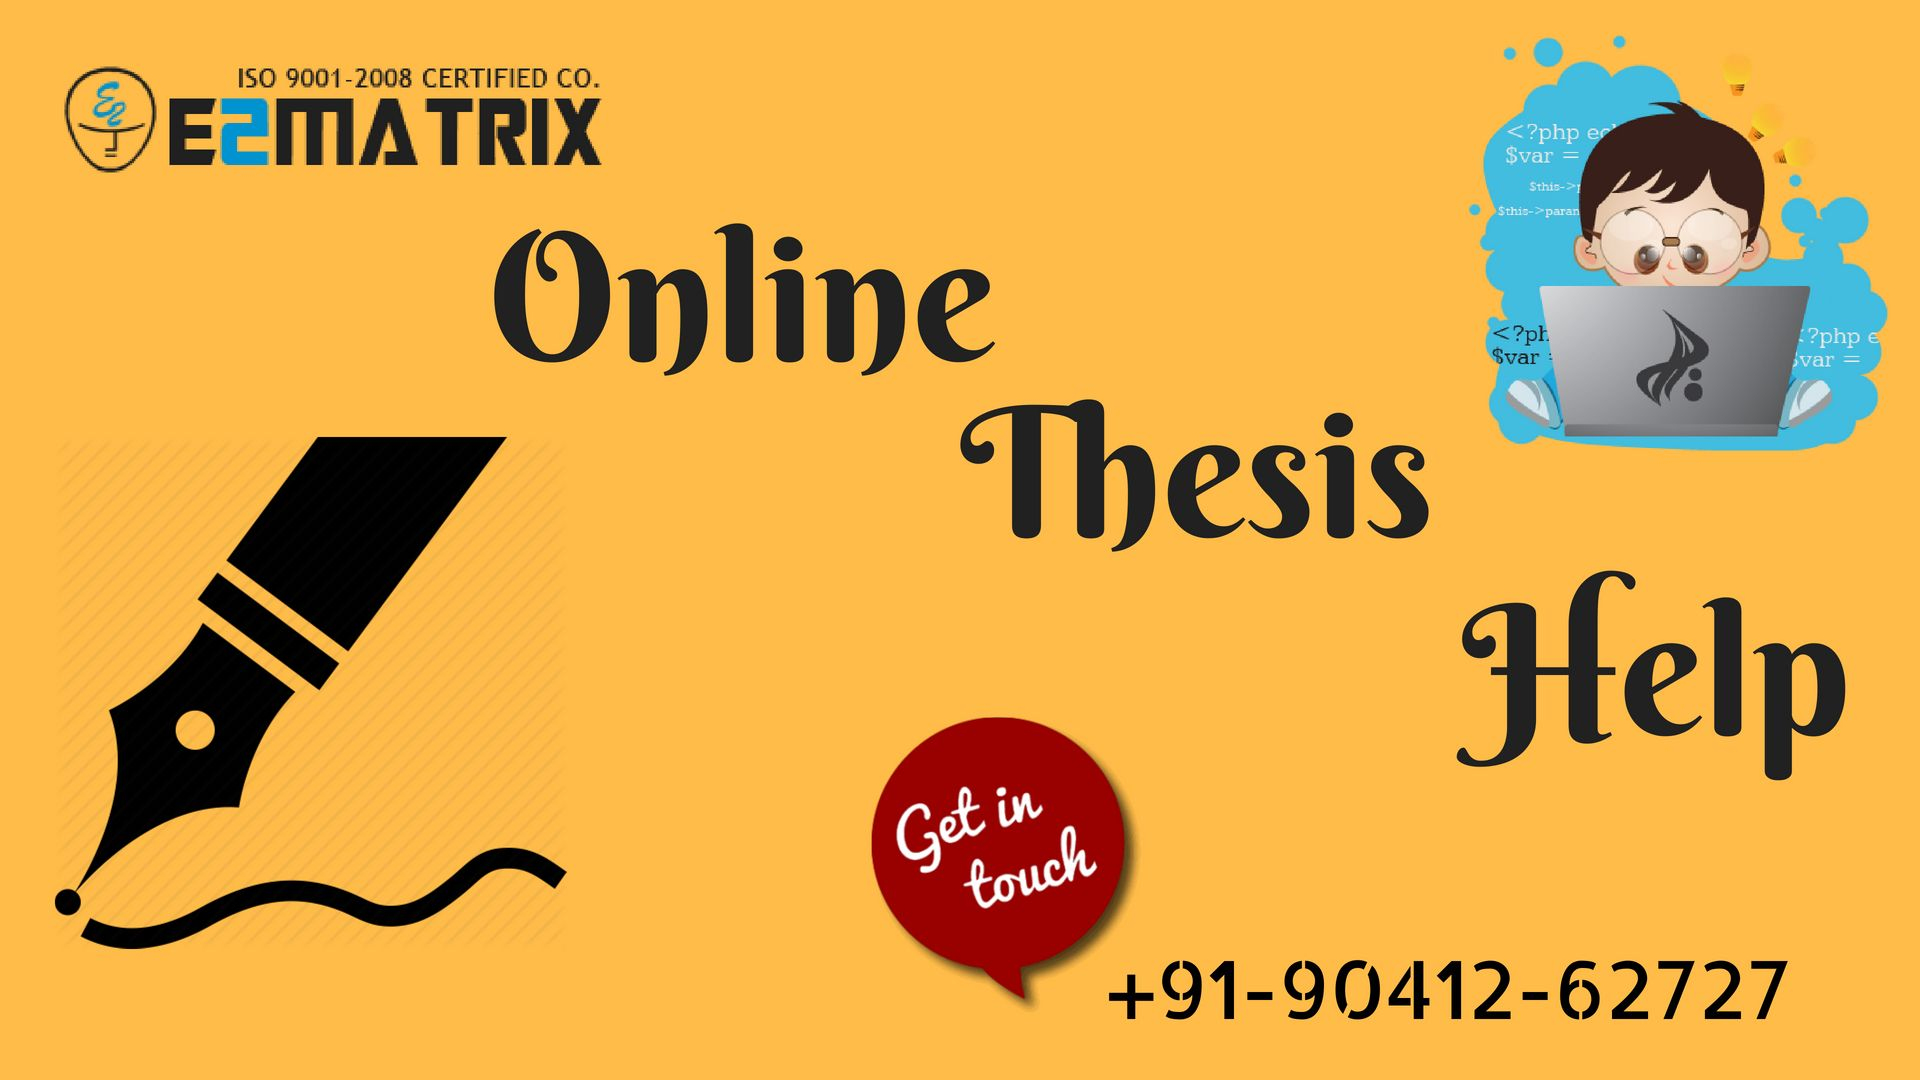 For Student Who Need Technical Assistance To Complete Their Dissertation Or Thesi We Offer Outstanding And Writing Service Phd Readymade